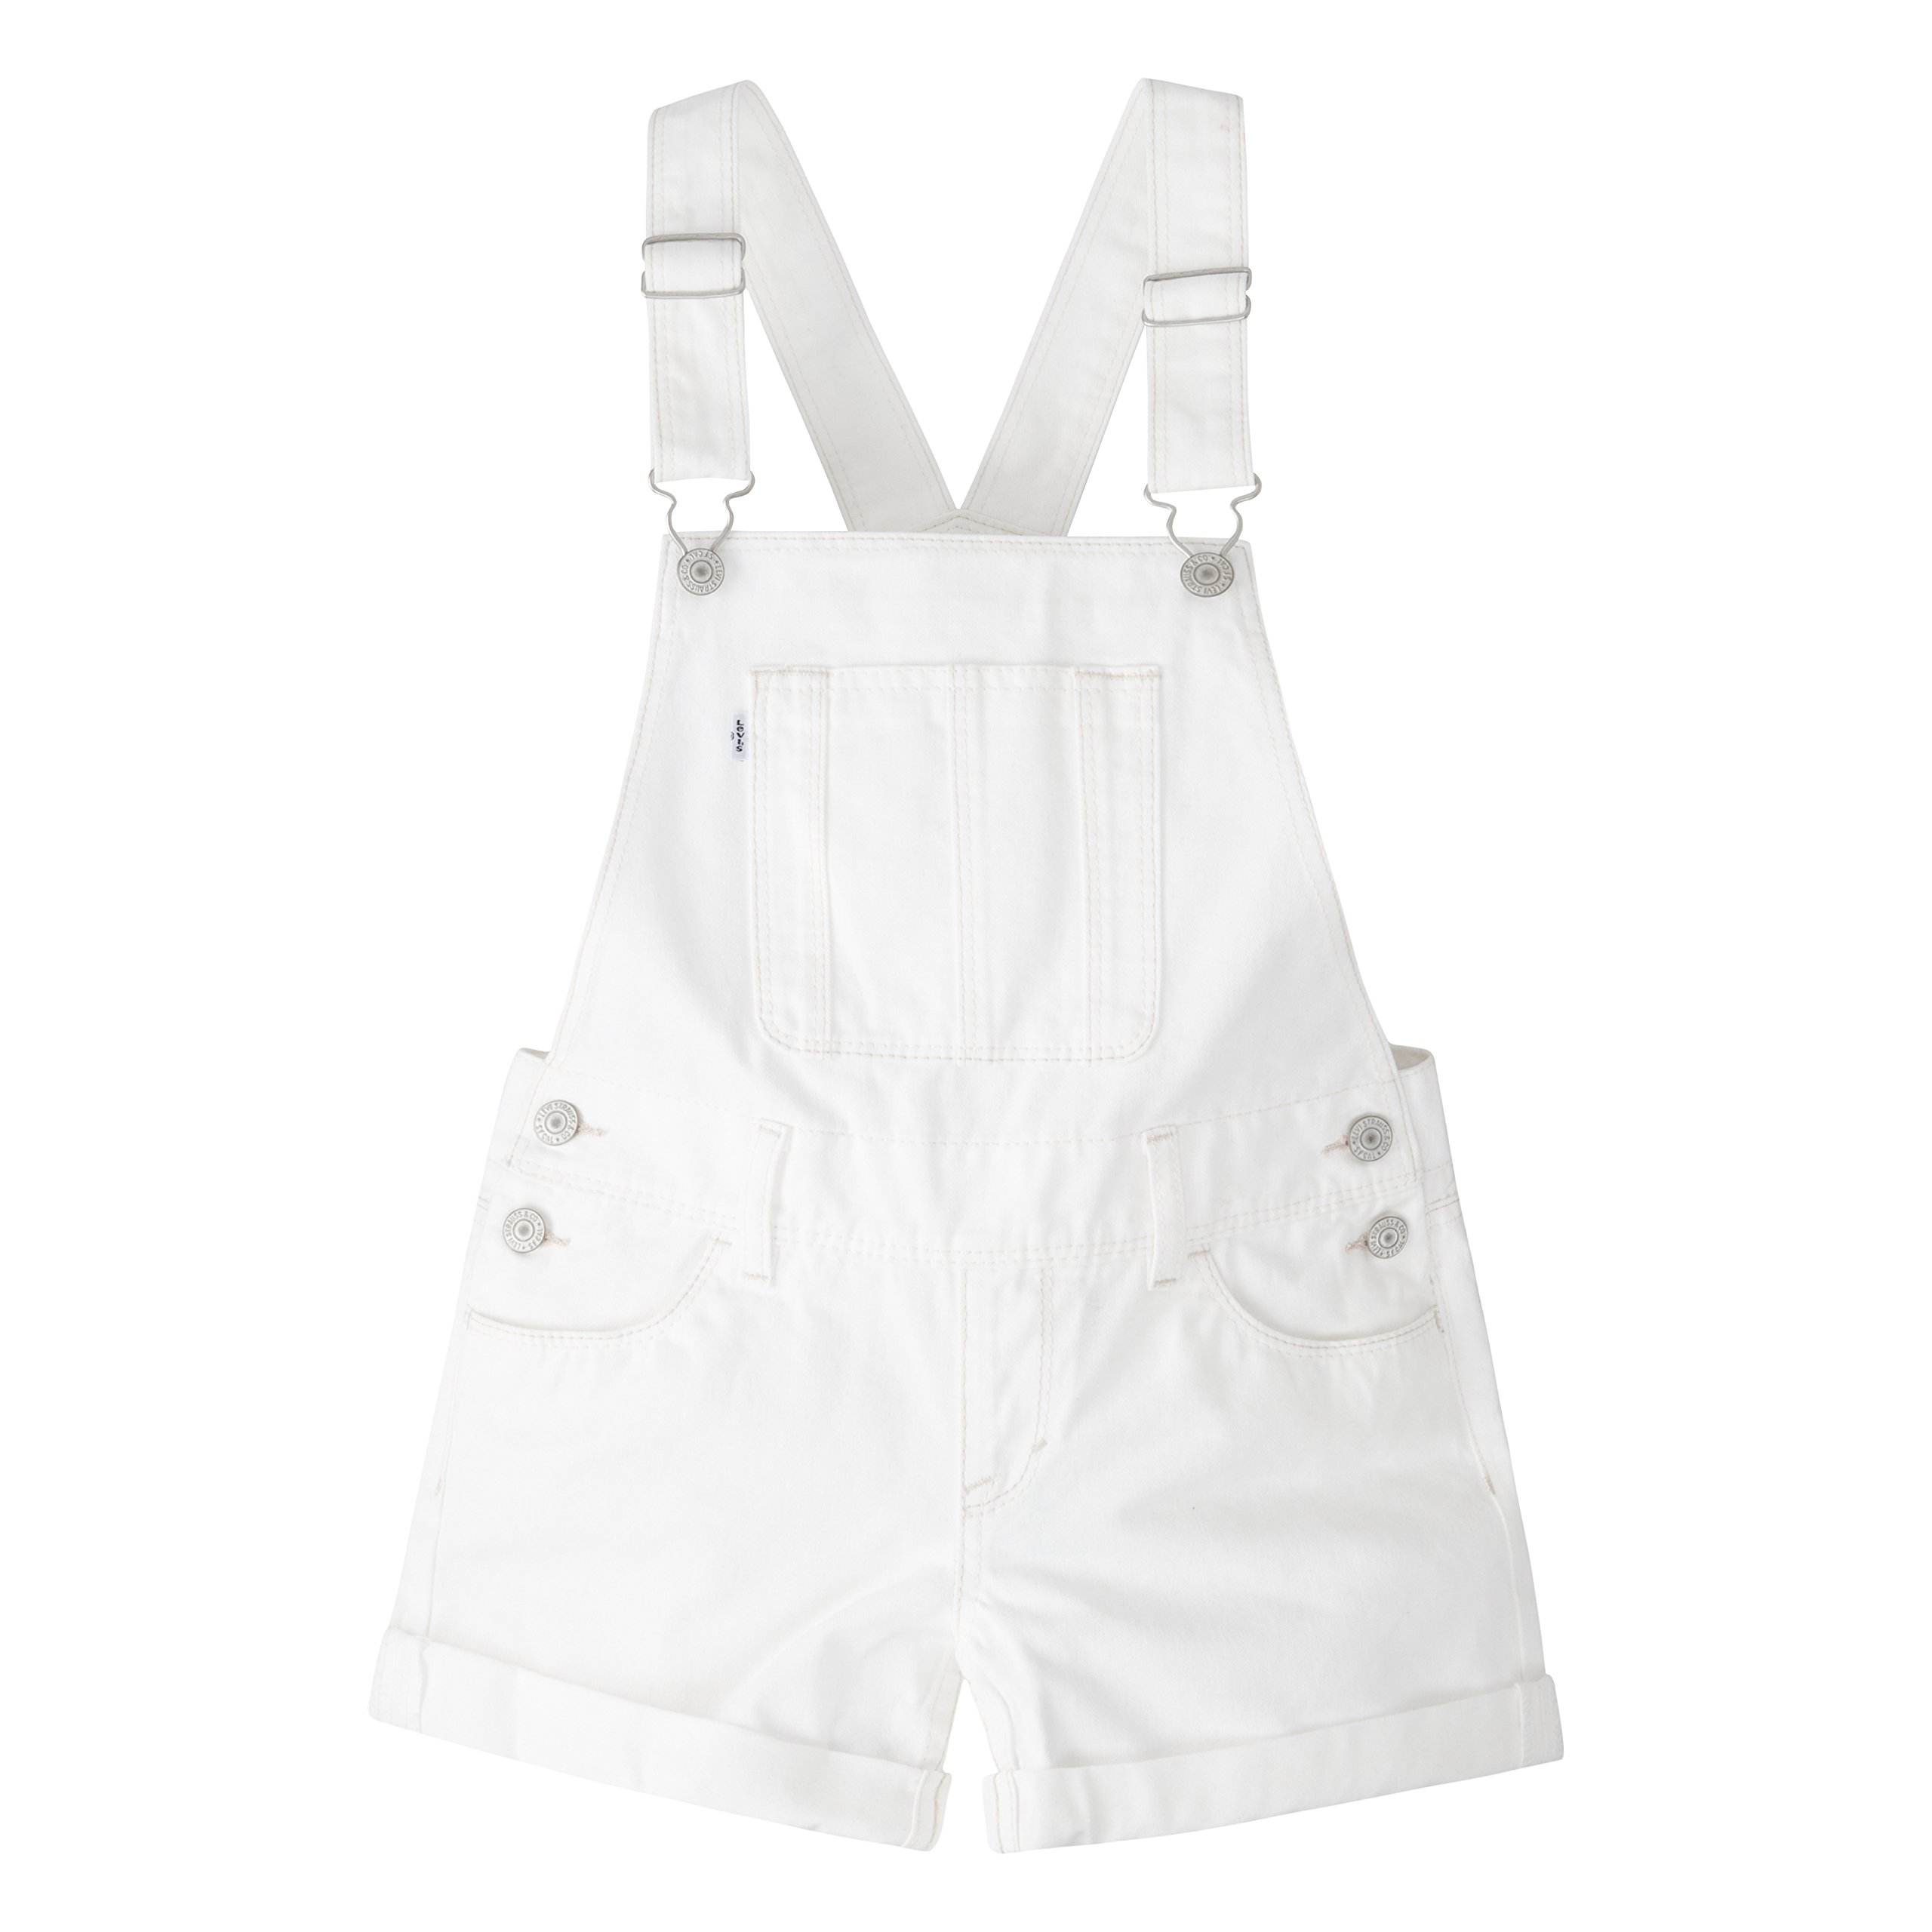 Levi's Big Girls' Denim Shortalls, White, 14